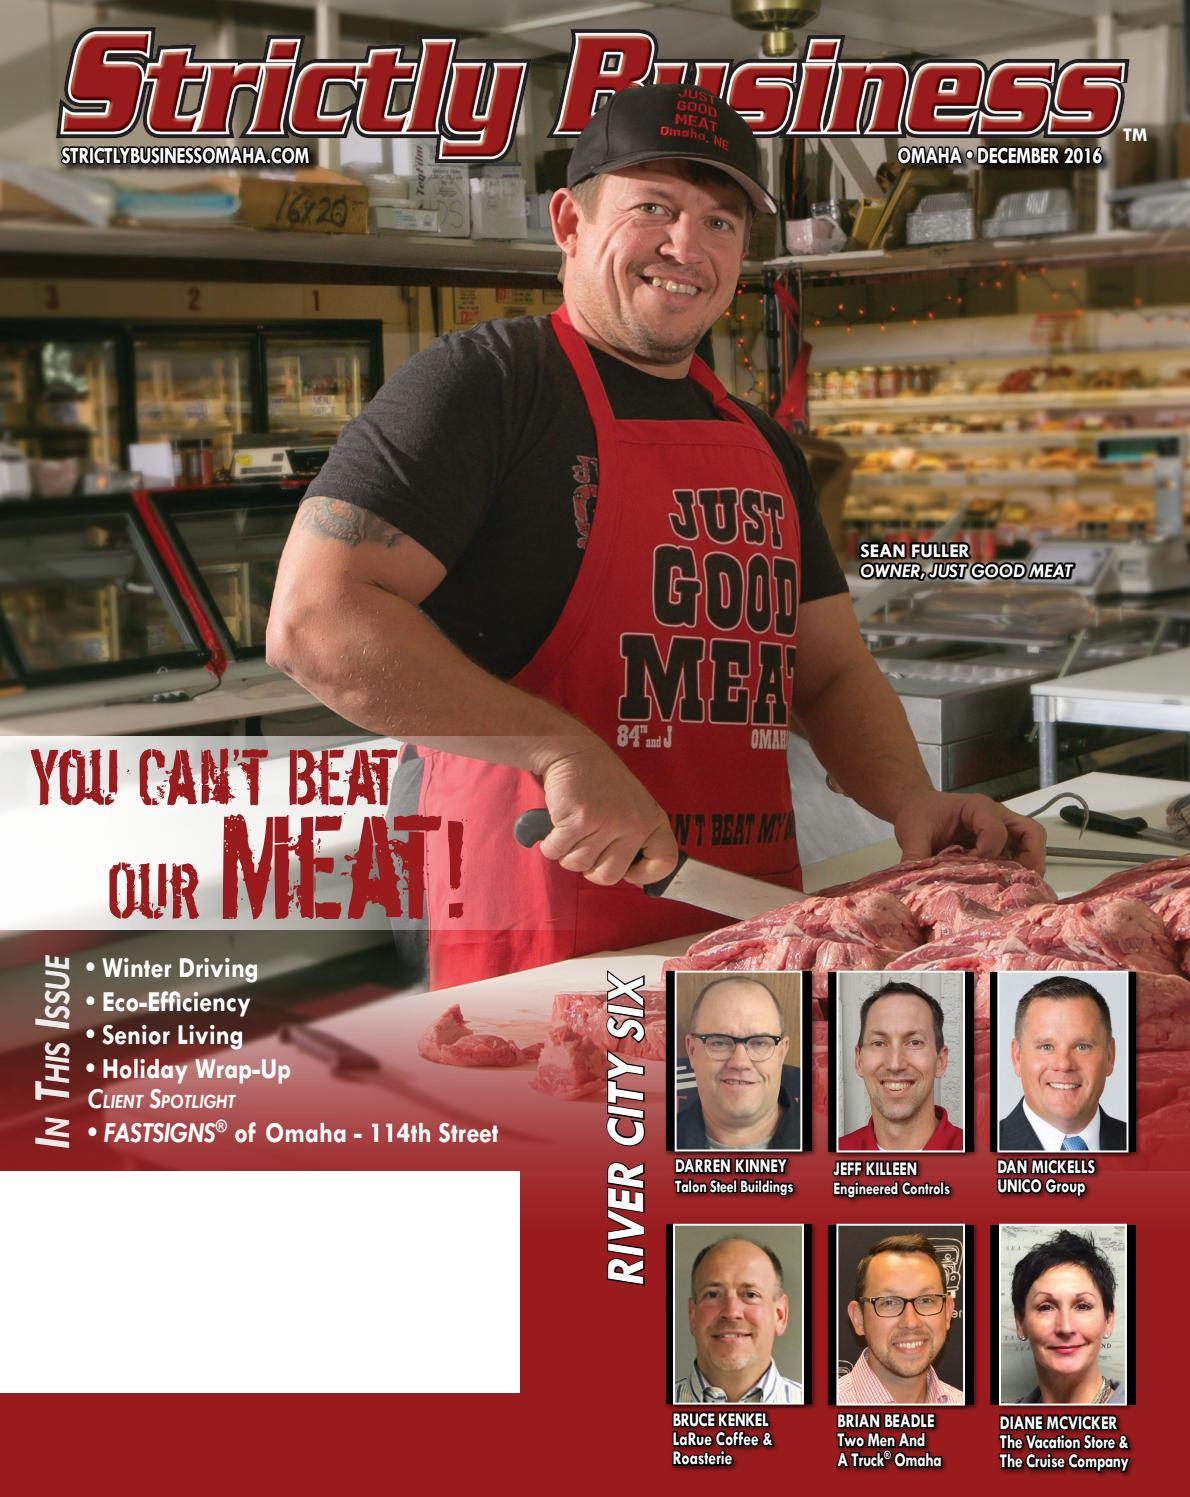 Red Lobster Lincoln Ne Strictly Business Lincoln July 2016 By Strictly Business Magazine